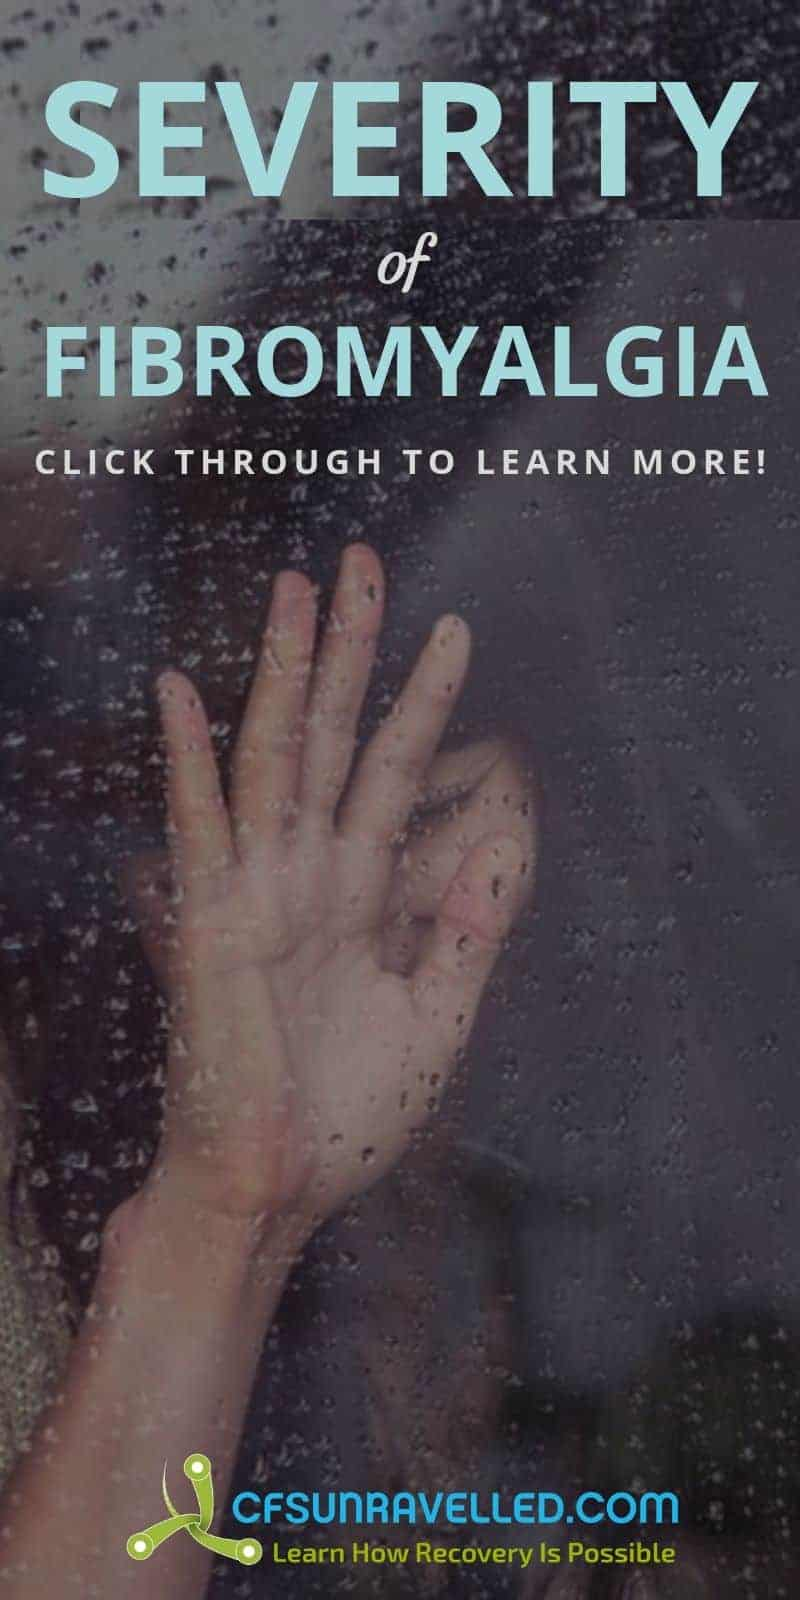 hand behind rain covered glass with headline about severity of fibromyalgia